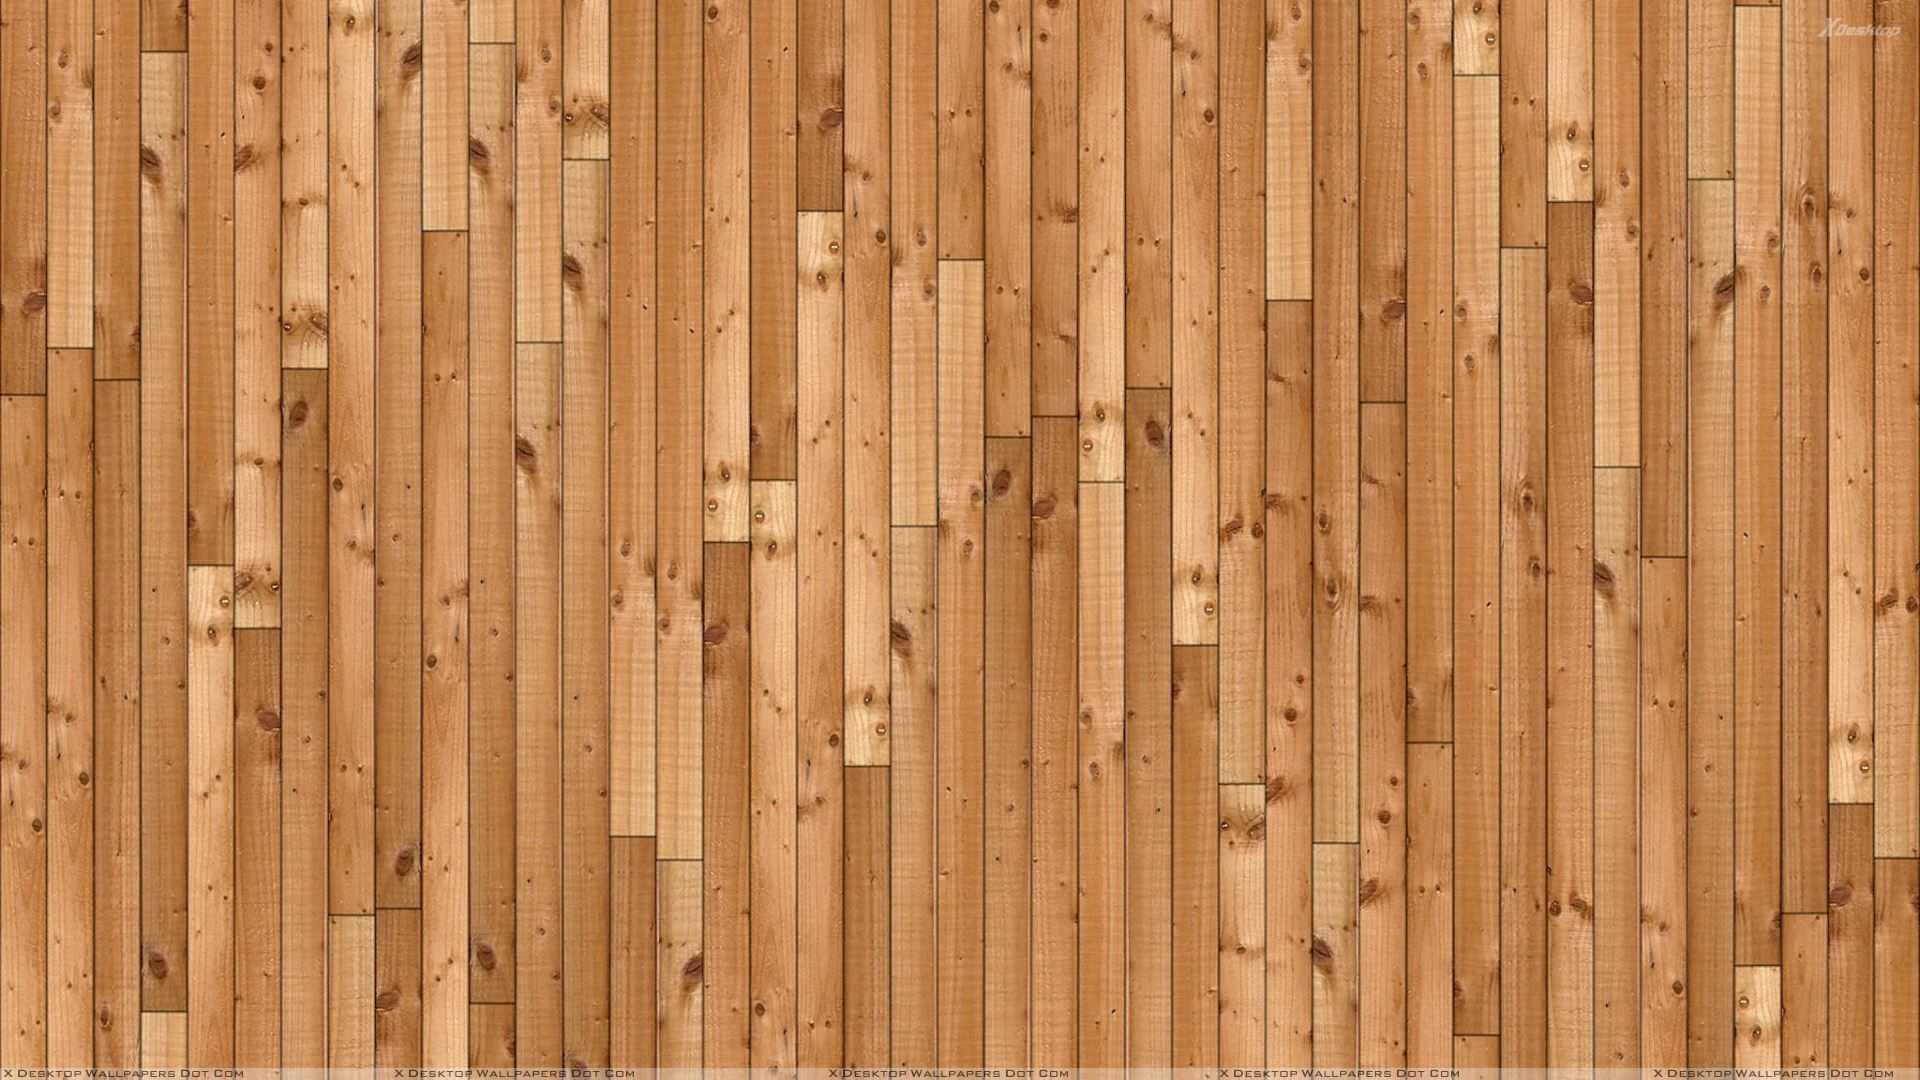 … Rustic Hardwood Background And Wooden Stipe Background …